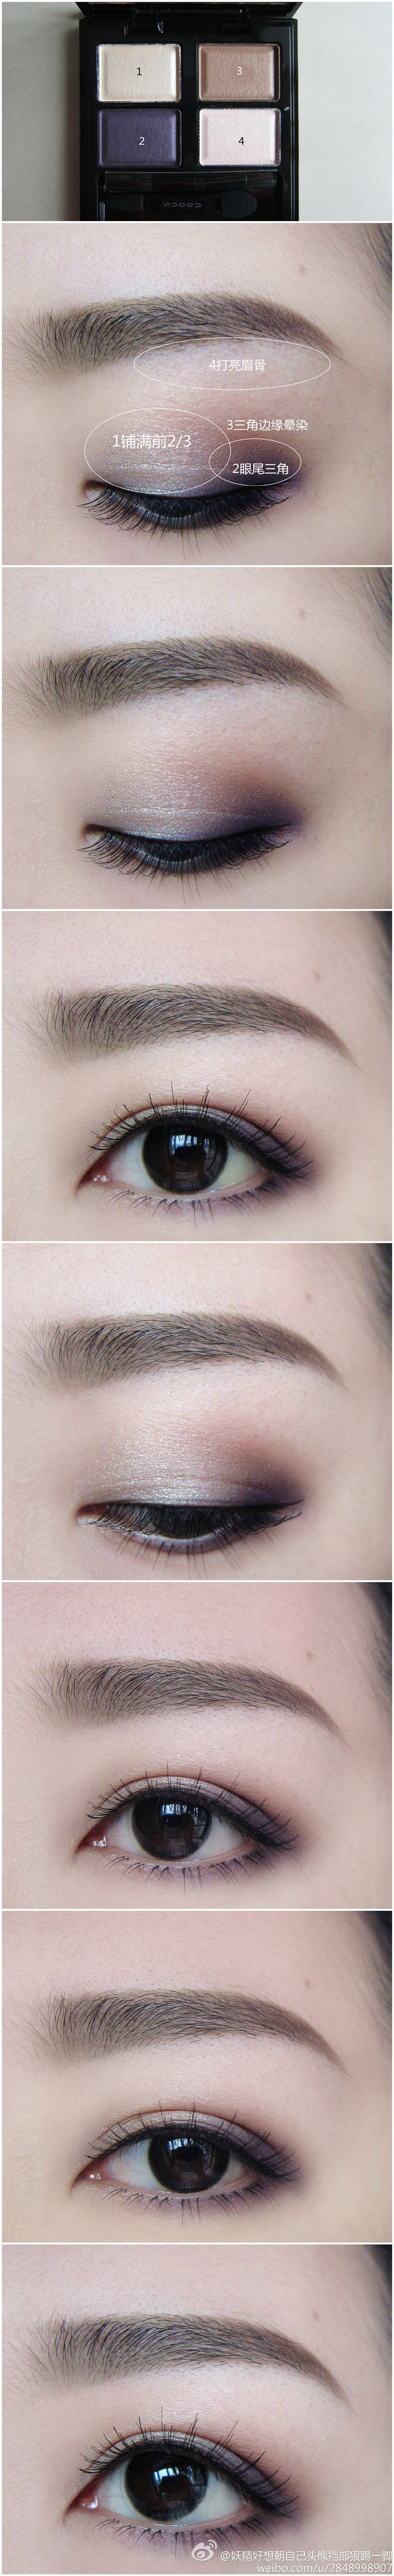 Show you how to apply beautiful purple smokey eye makeup                                                                                                                                                                                 More